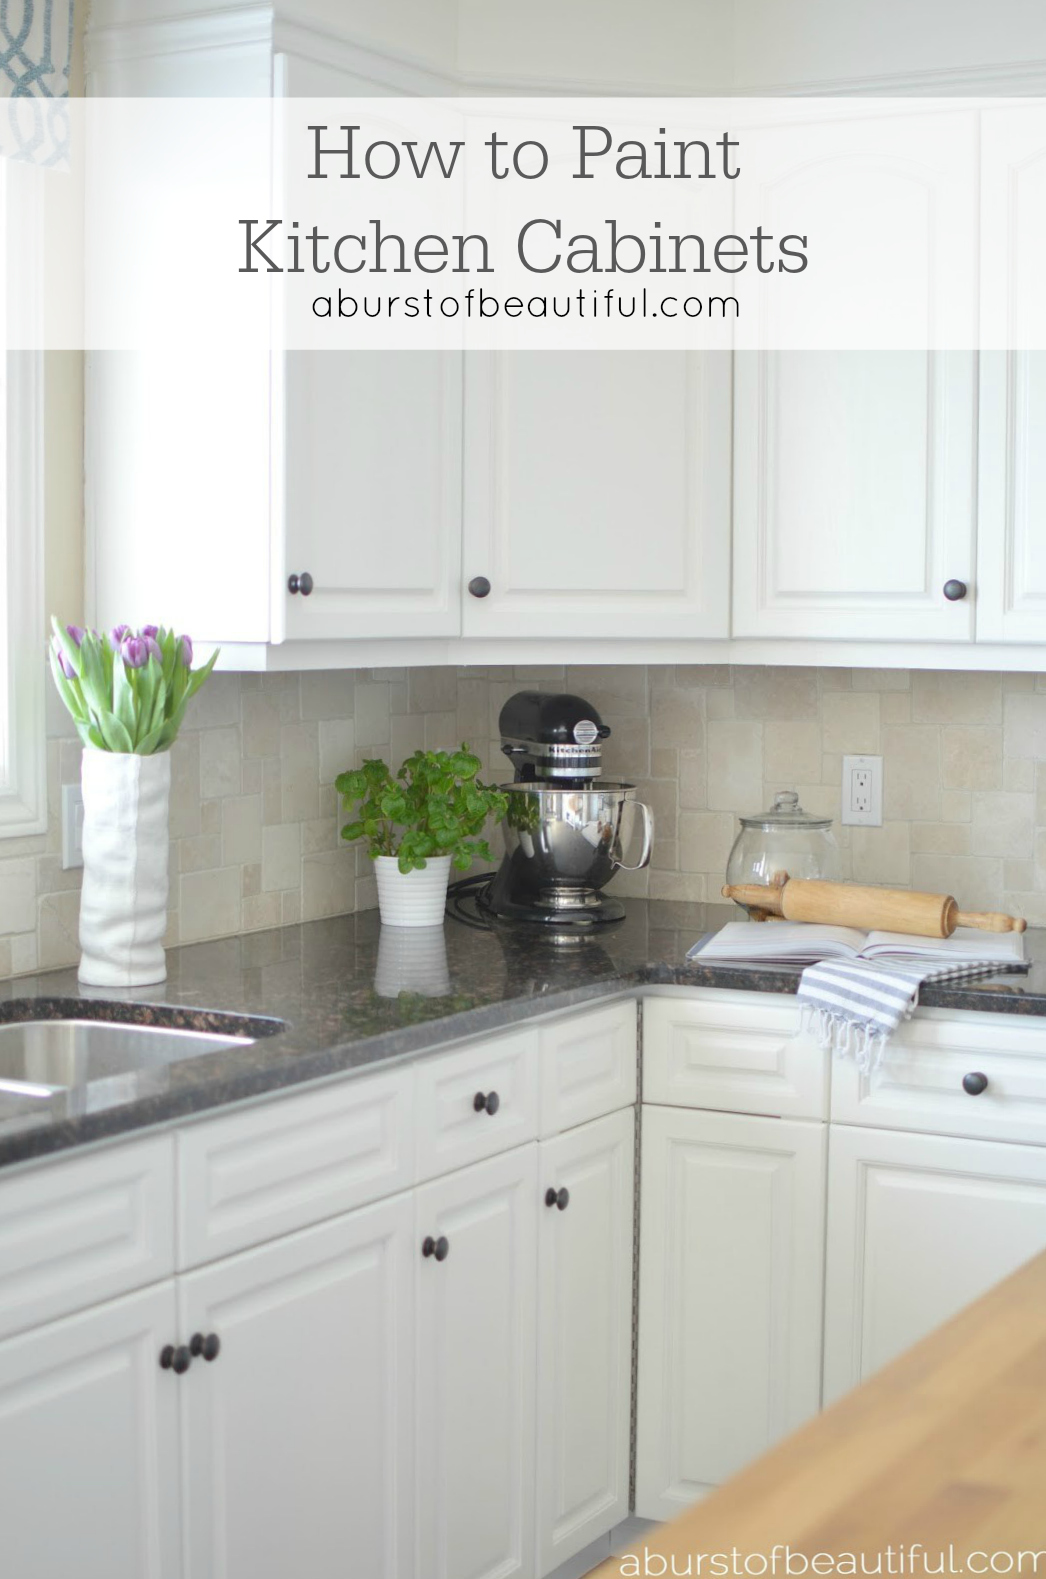 Uncategorized How To Paint Kitchen Cabinets to paint kitchen cabinets a burst of beautiful how beautiful